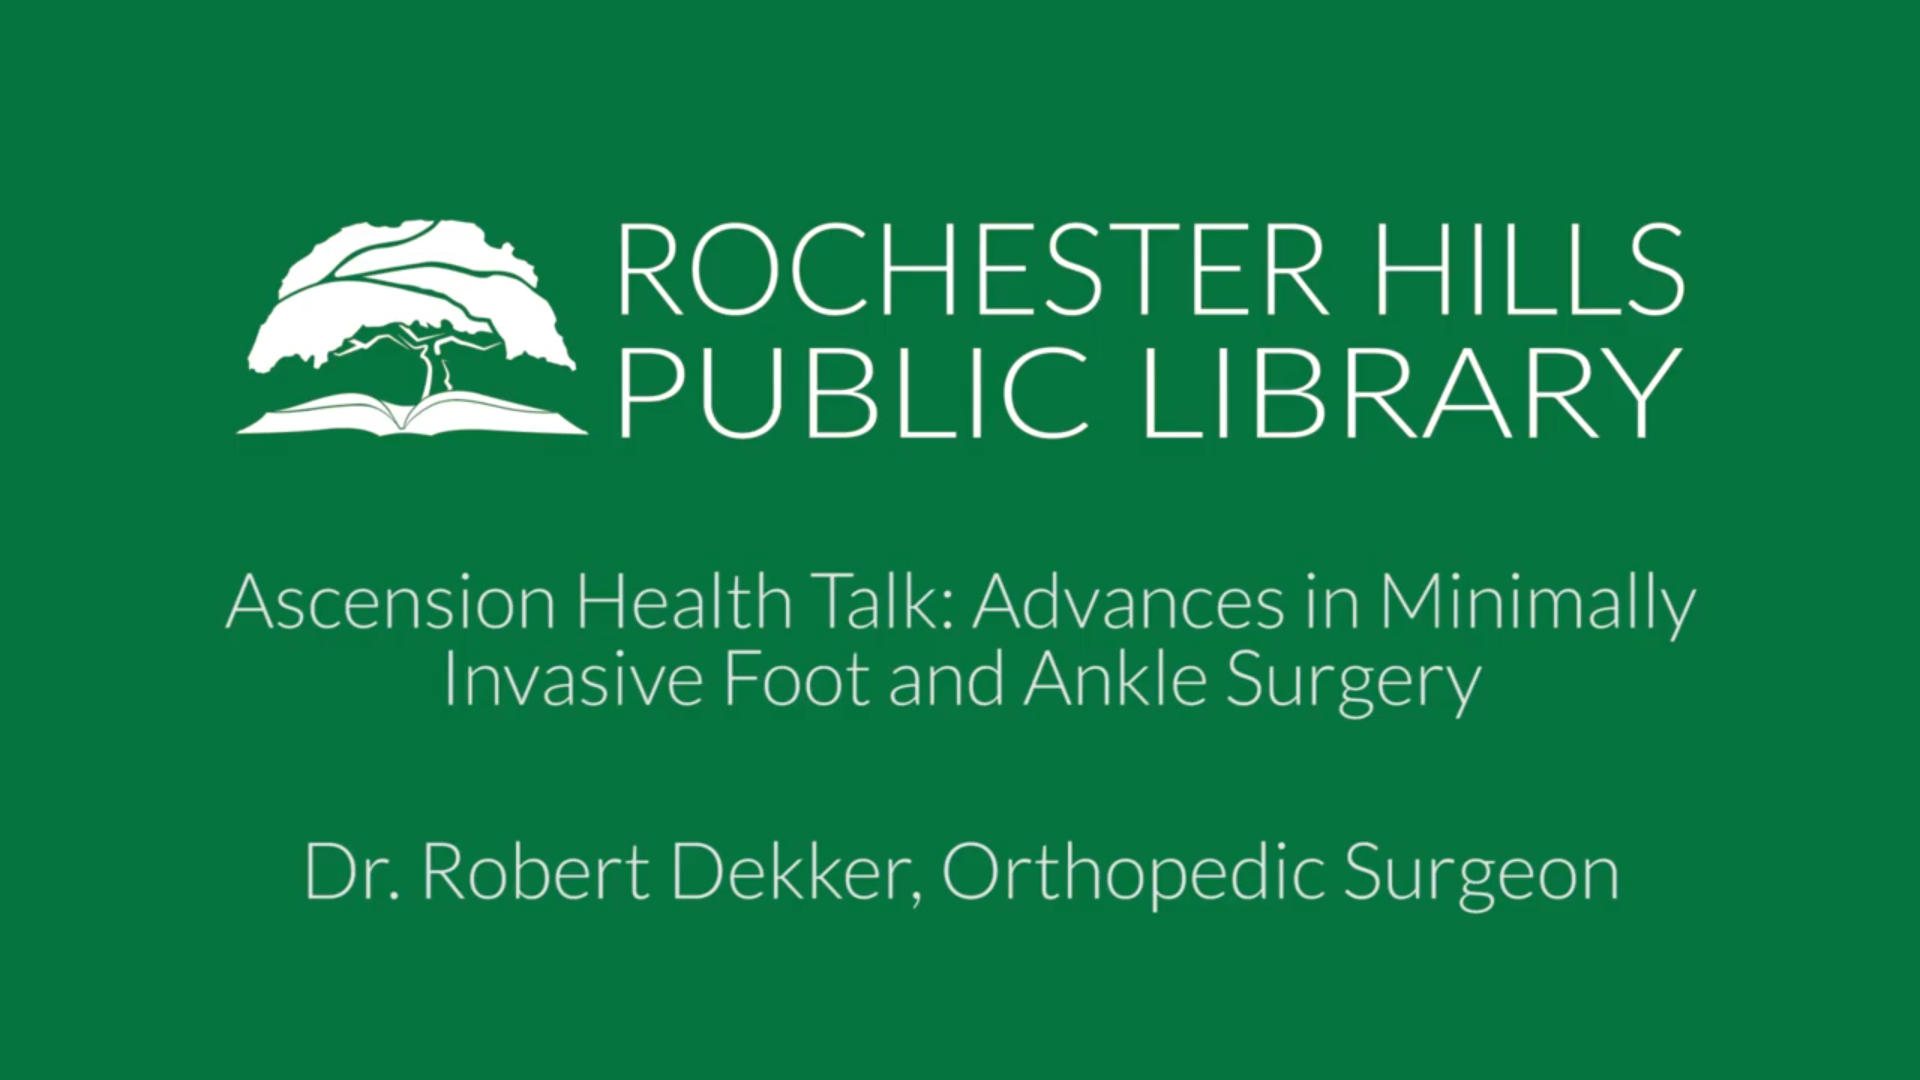 Ascension Health Talk: Advances in Minimally Invasive Foot and Ankle Surgery